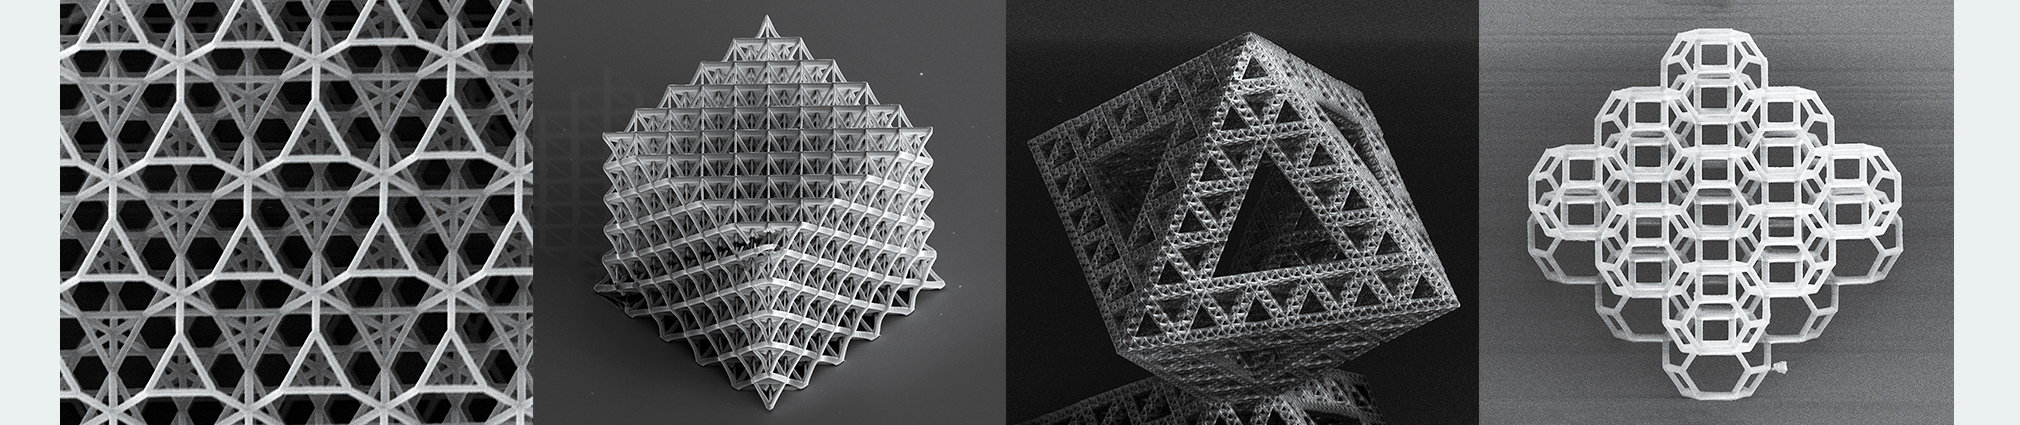 Fine-tuning materials' architecture at the nanoscale yields distinctive patterns—and unusual properties.